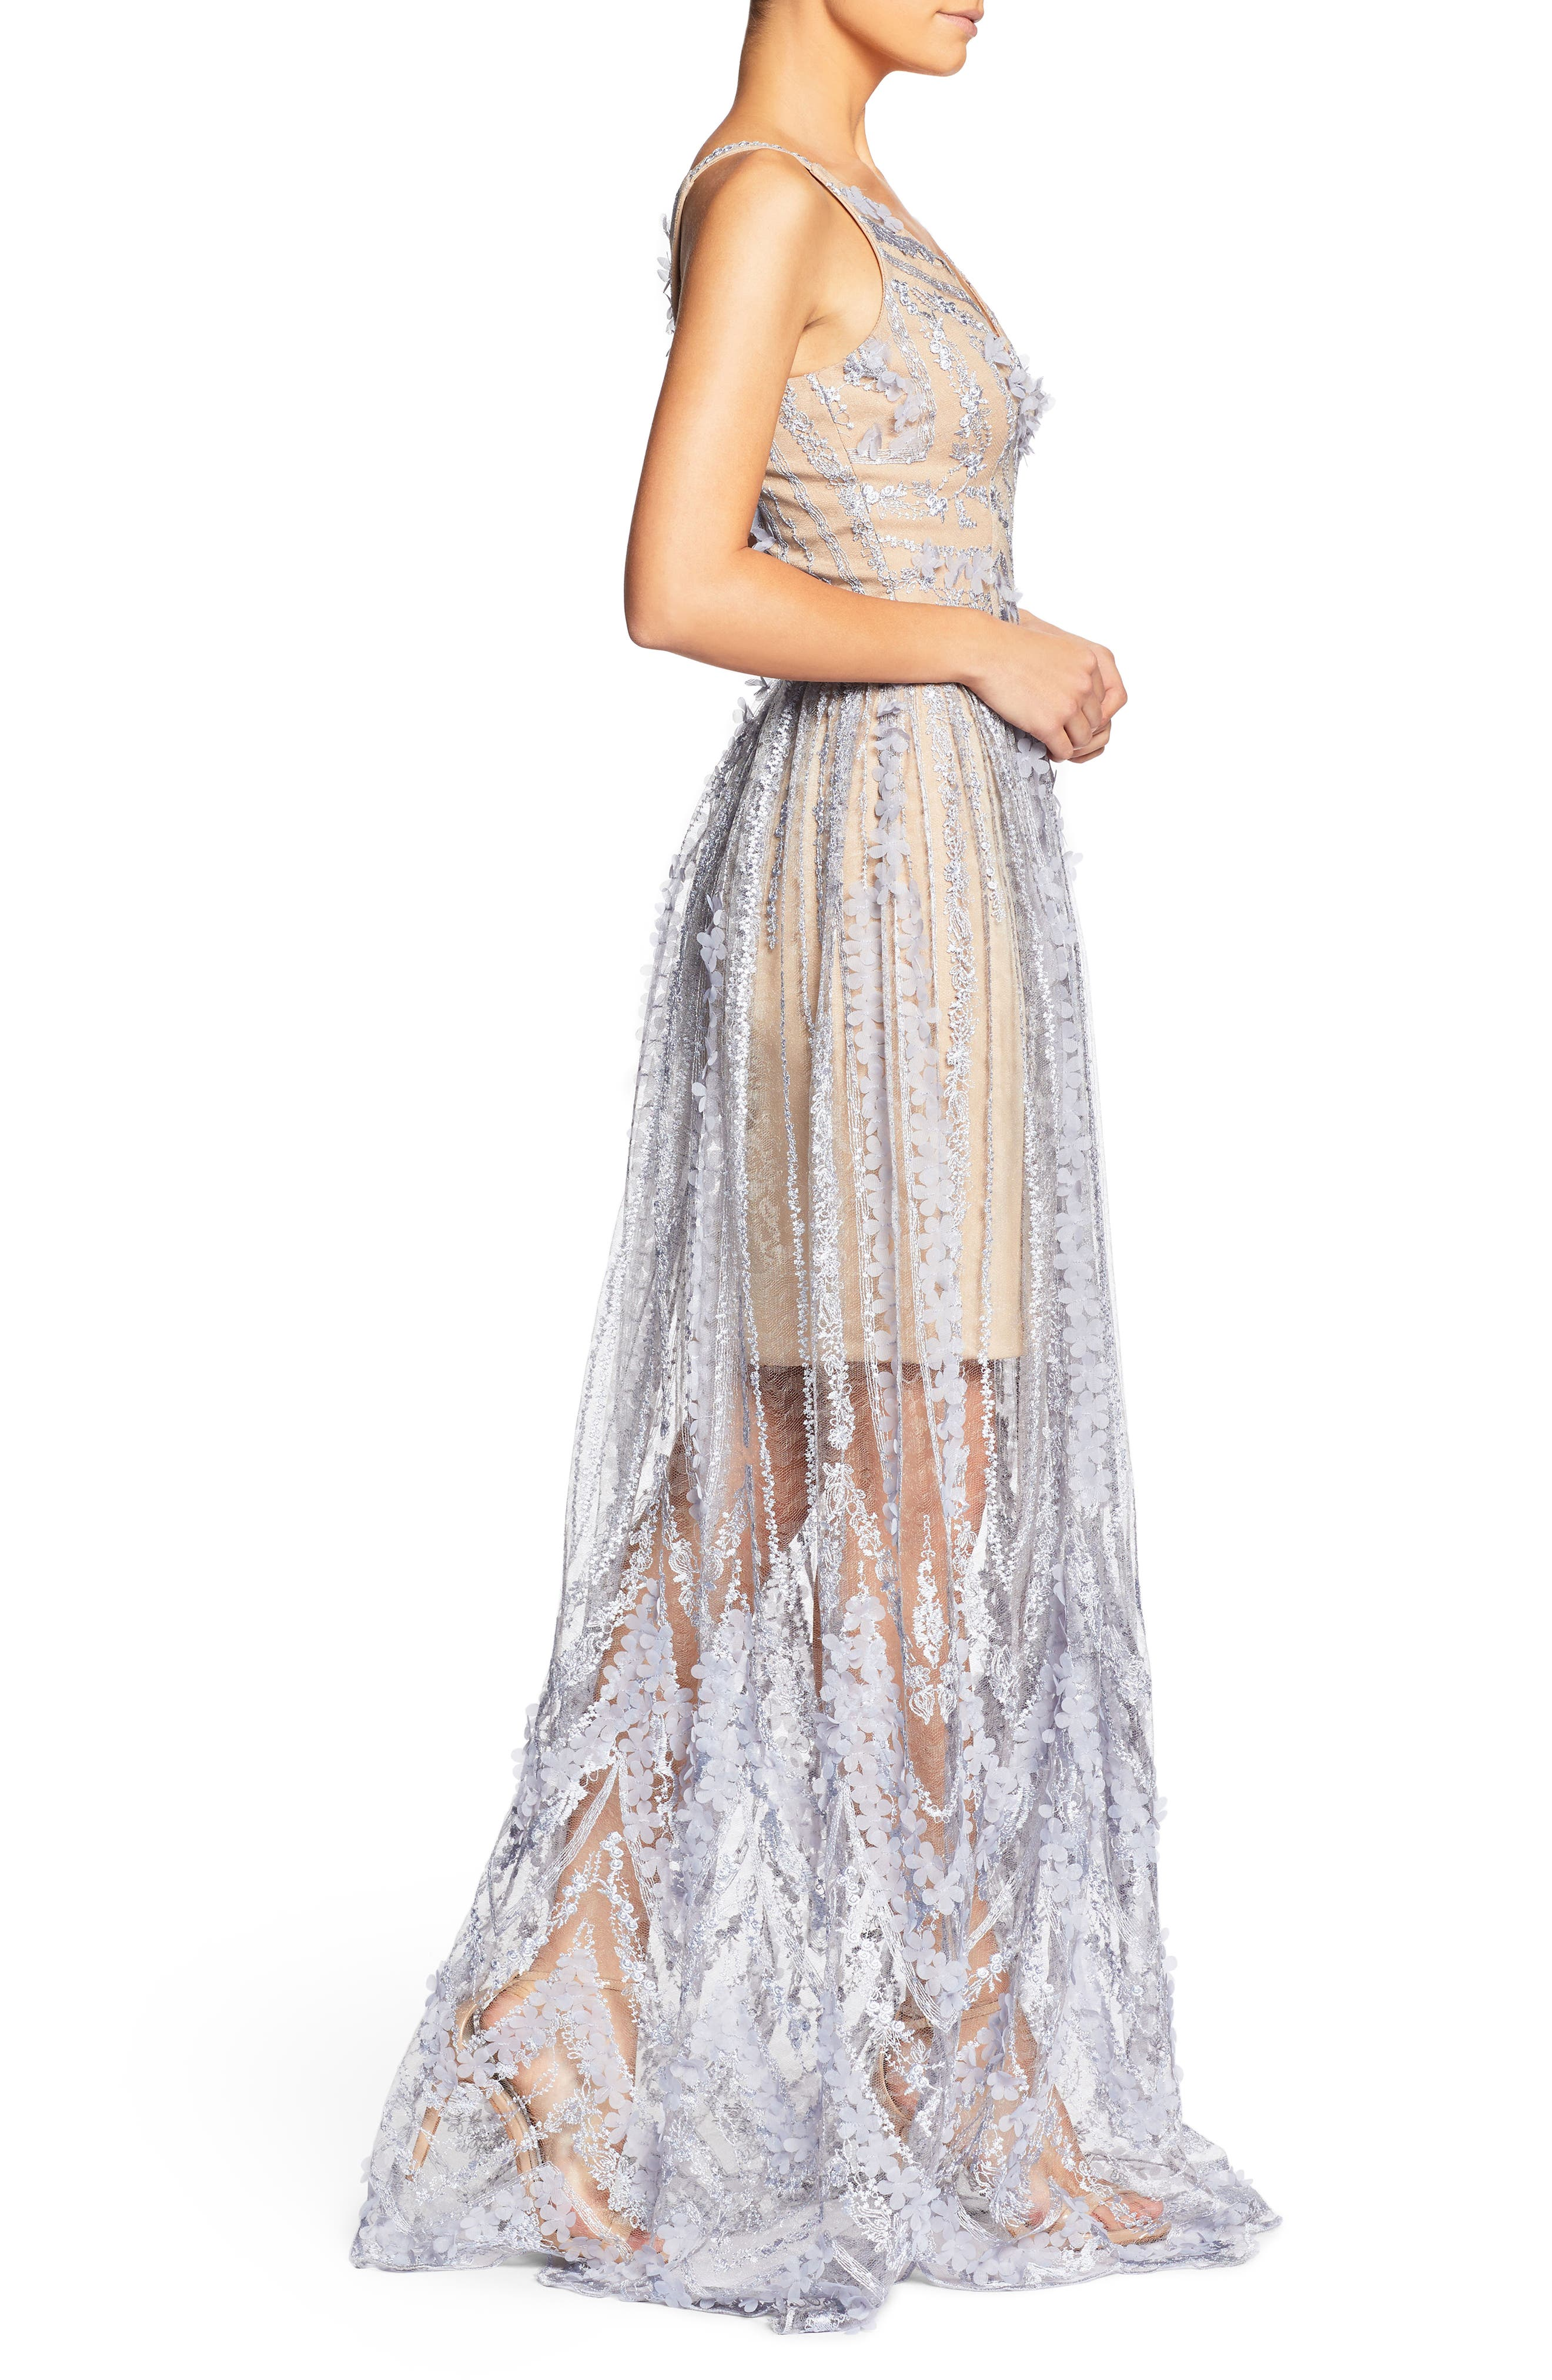 Chelsea Lace A-Line Gown,                             Alternate thumbnail 3, color,                             Mineral Blue/ Nude